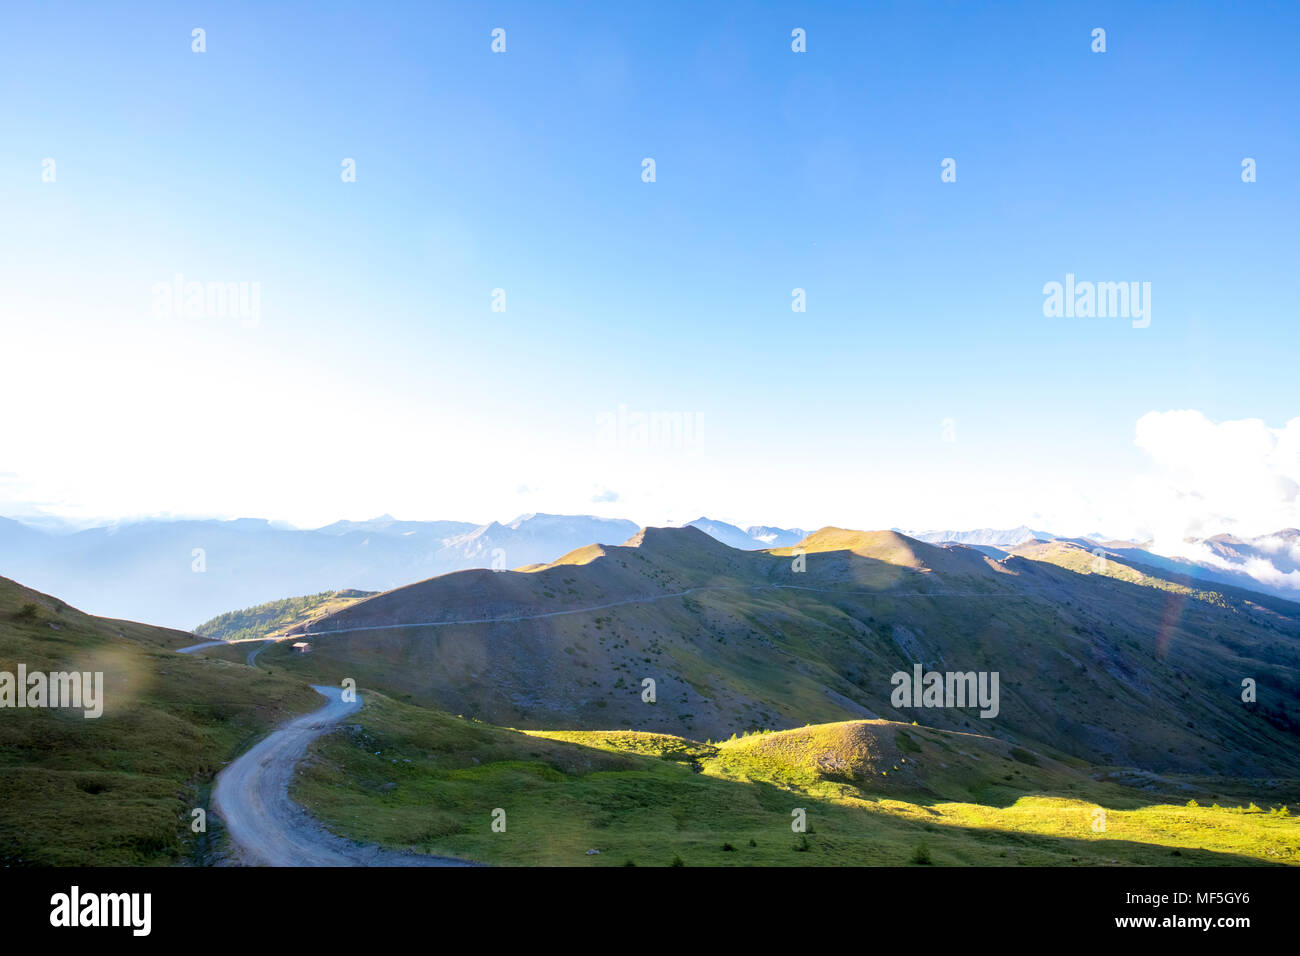 Italy, Piemont, West Alps, Colle dell'Assietta, Colle di Sestriere, Aerial view Stock Photo